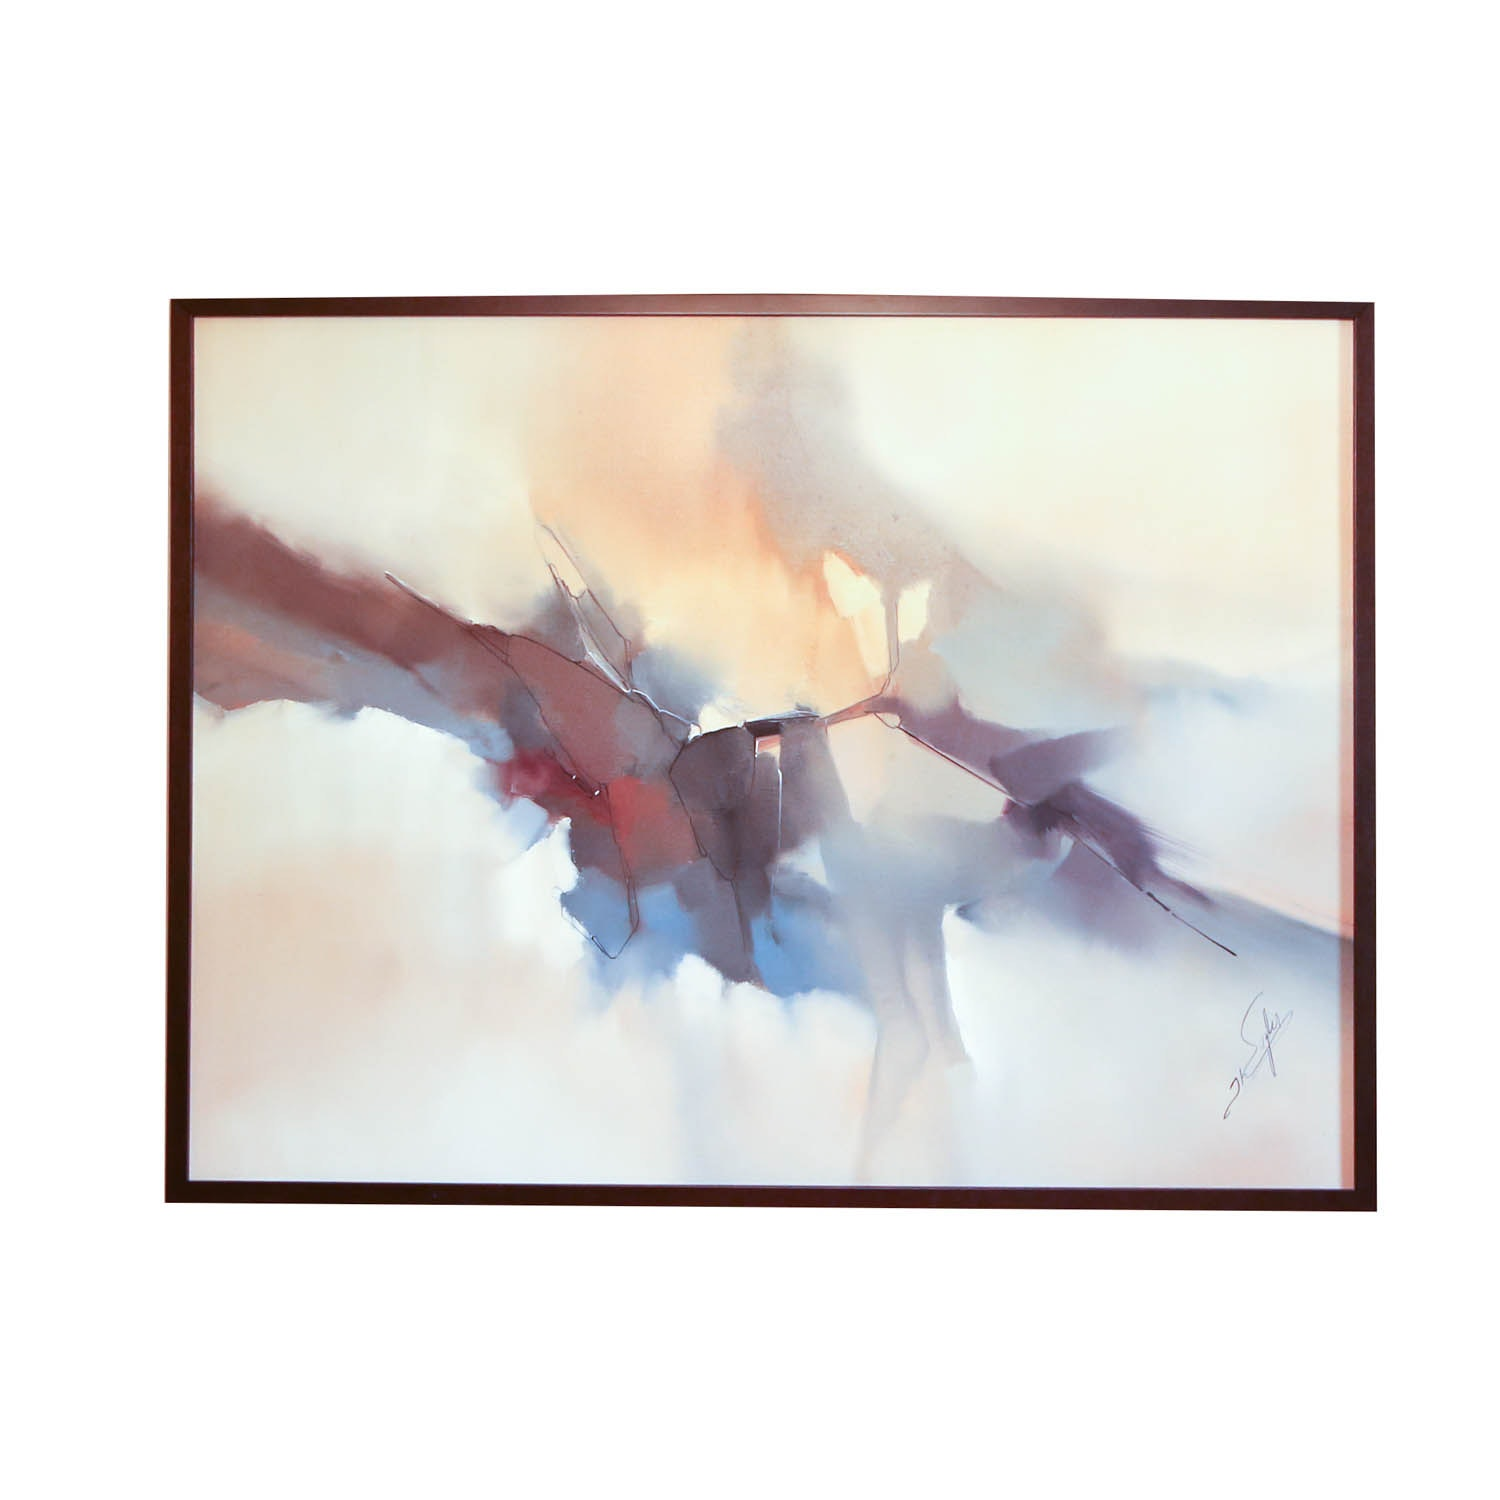 Thomas Kugler Abstract Oil Painting on Canvas